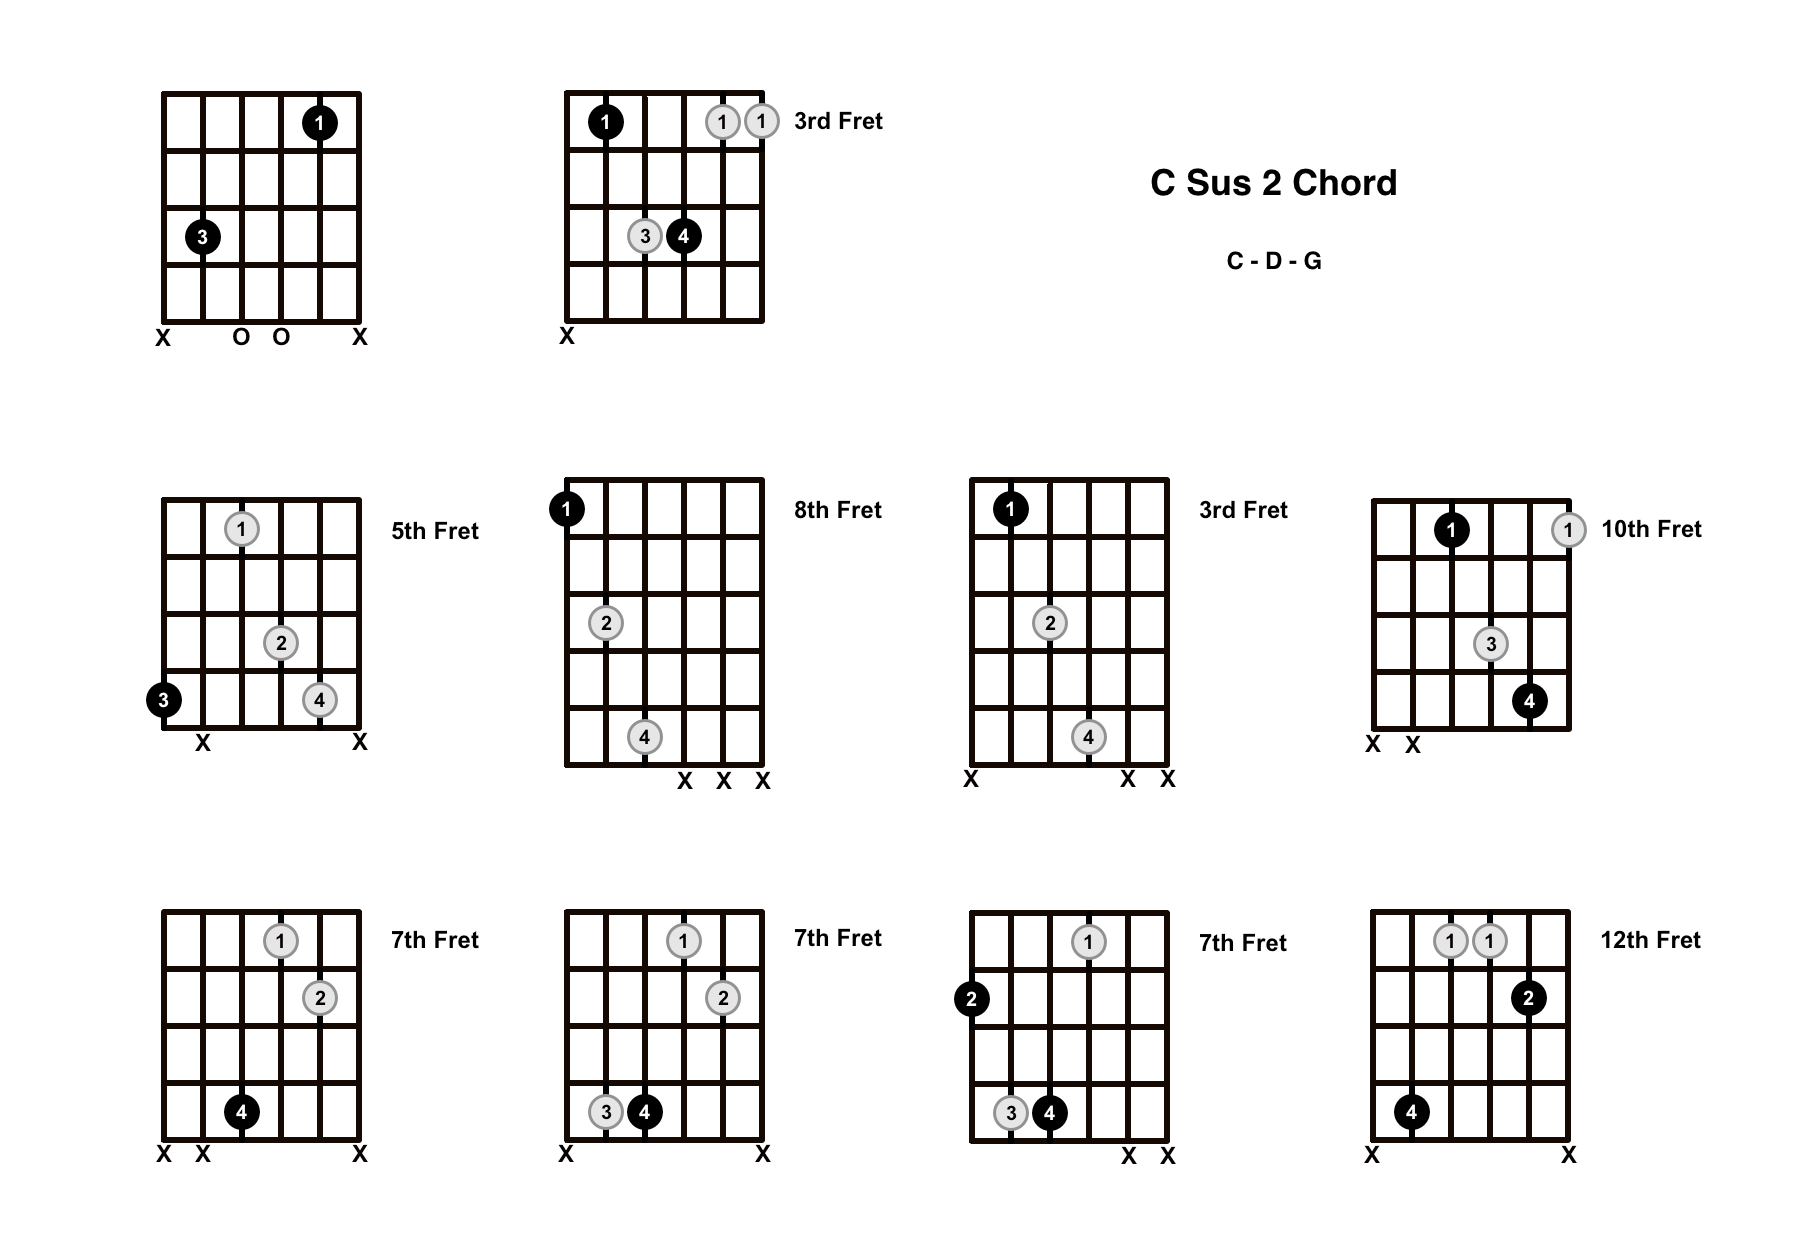 C Sus 2 Chord On The Guitar (C Suspended 2) – Diagrams, Finger Positions and Theory